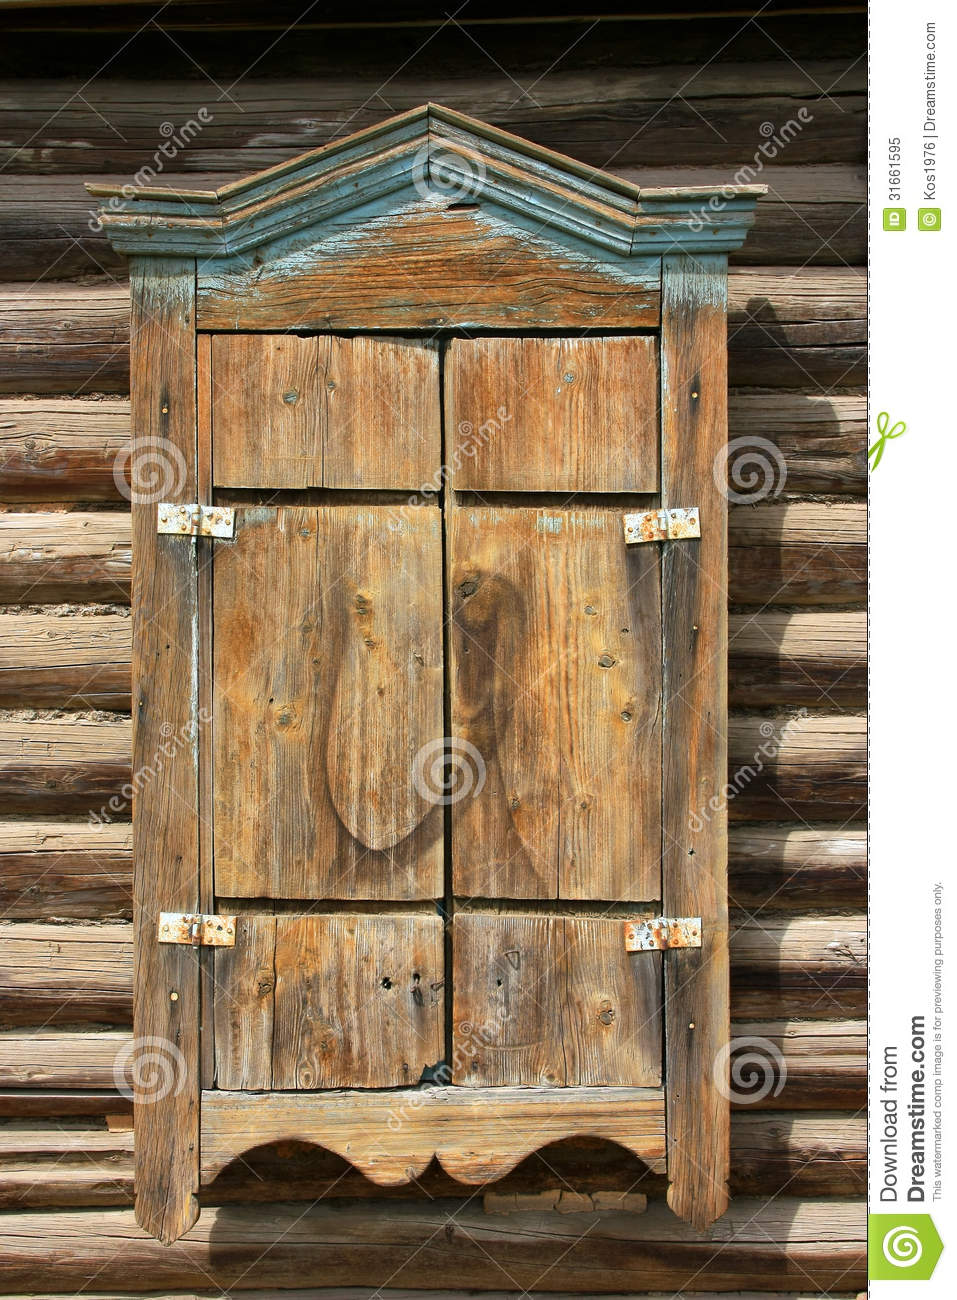 Wood Shutters Closed : Wooden window shutters closed royalty free stock photo